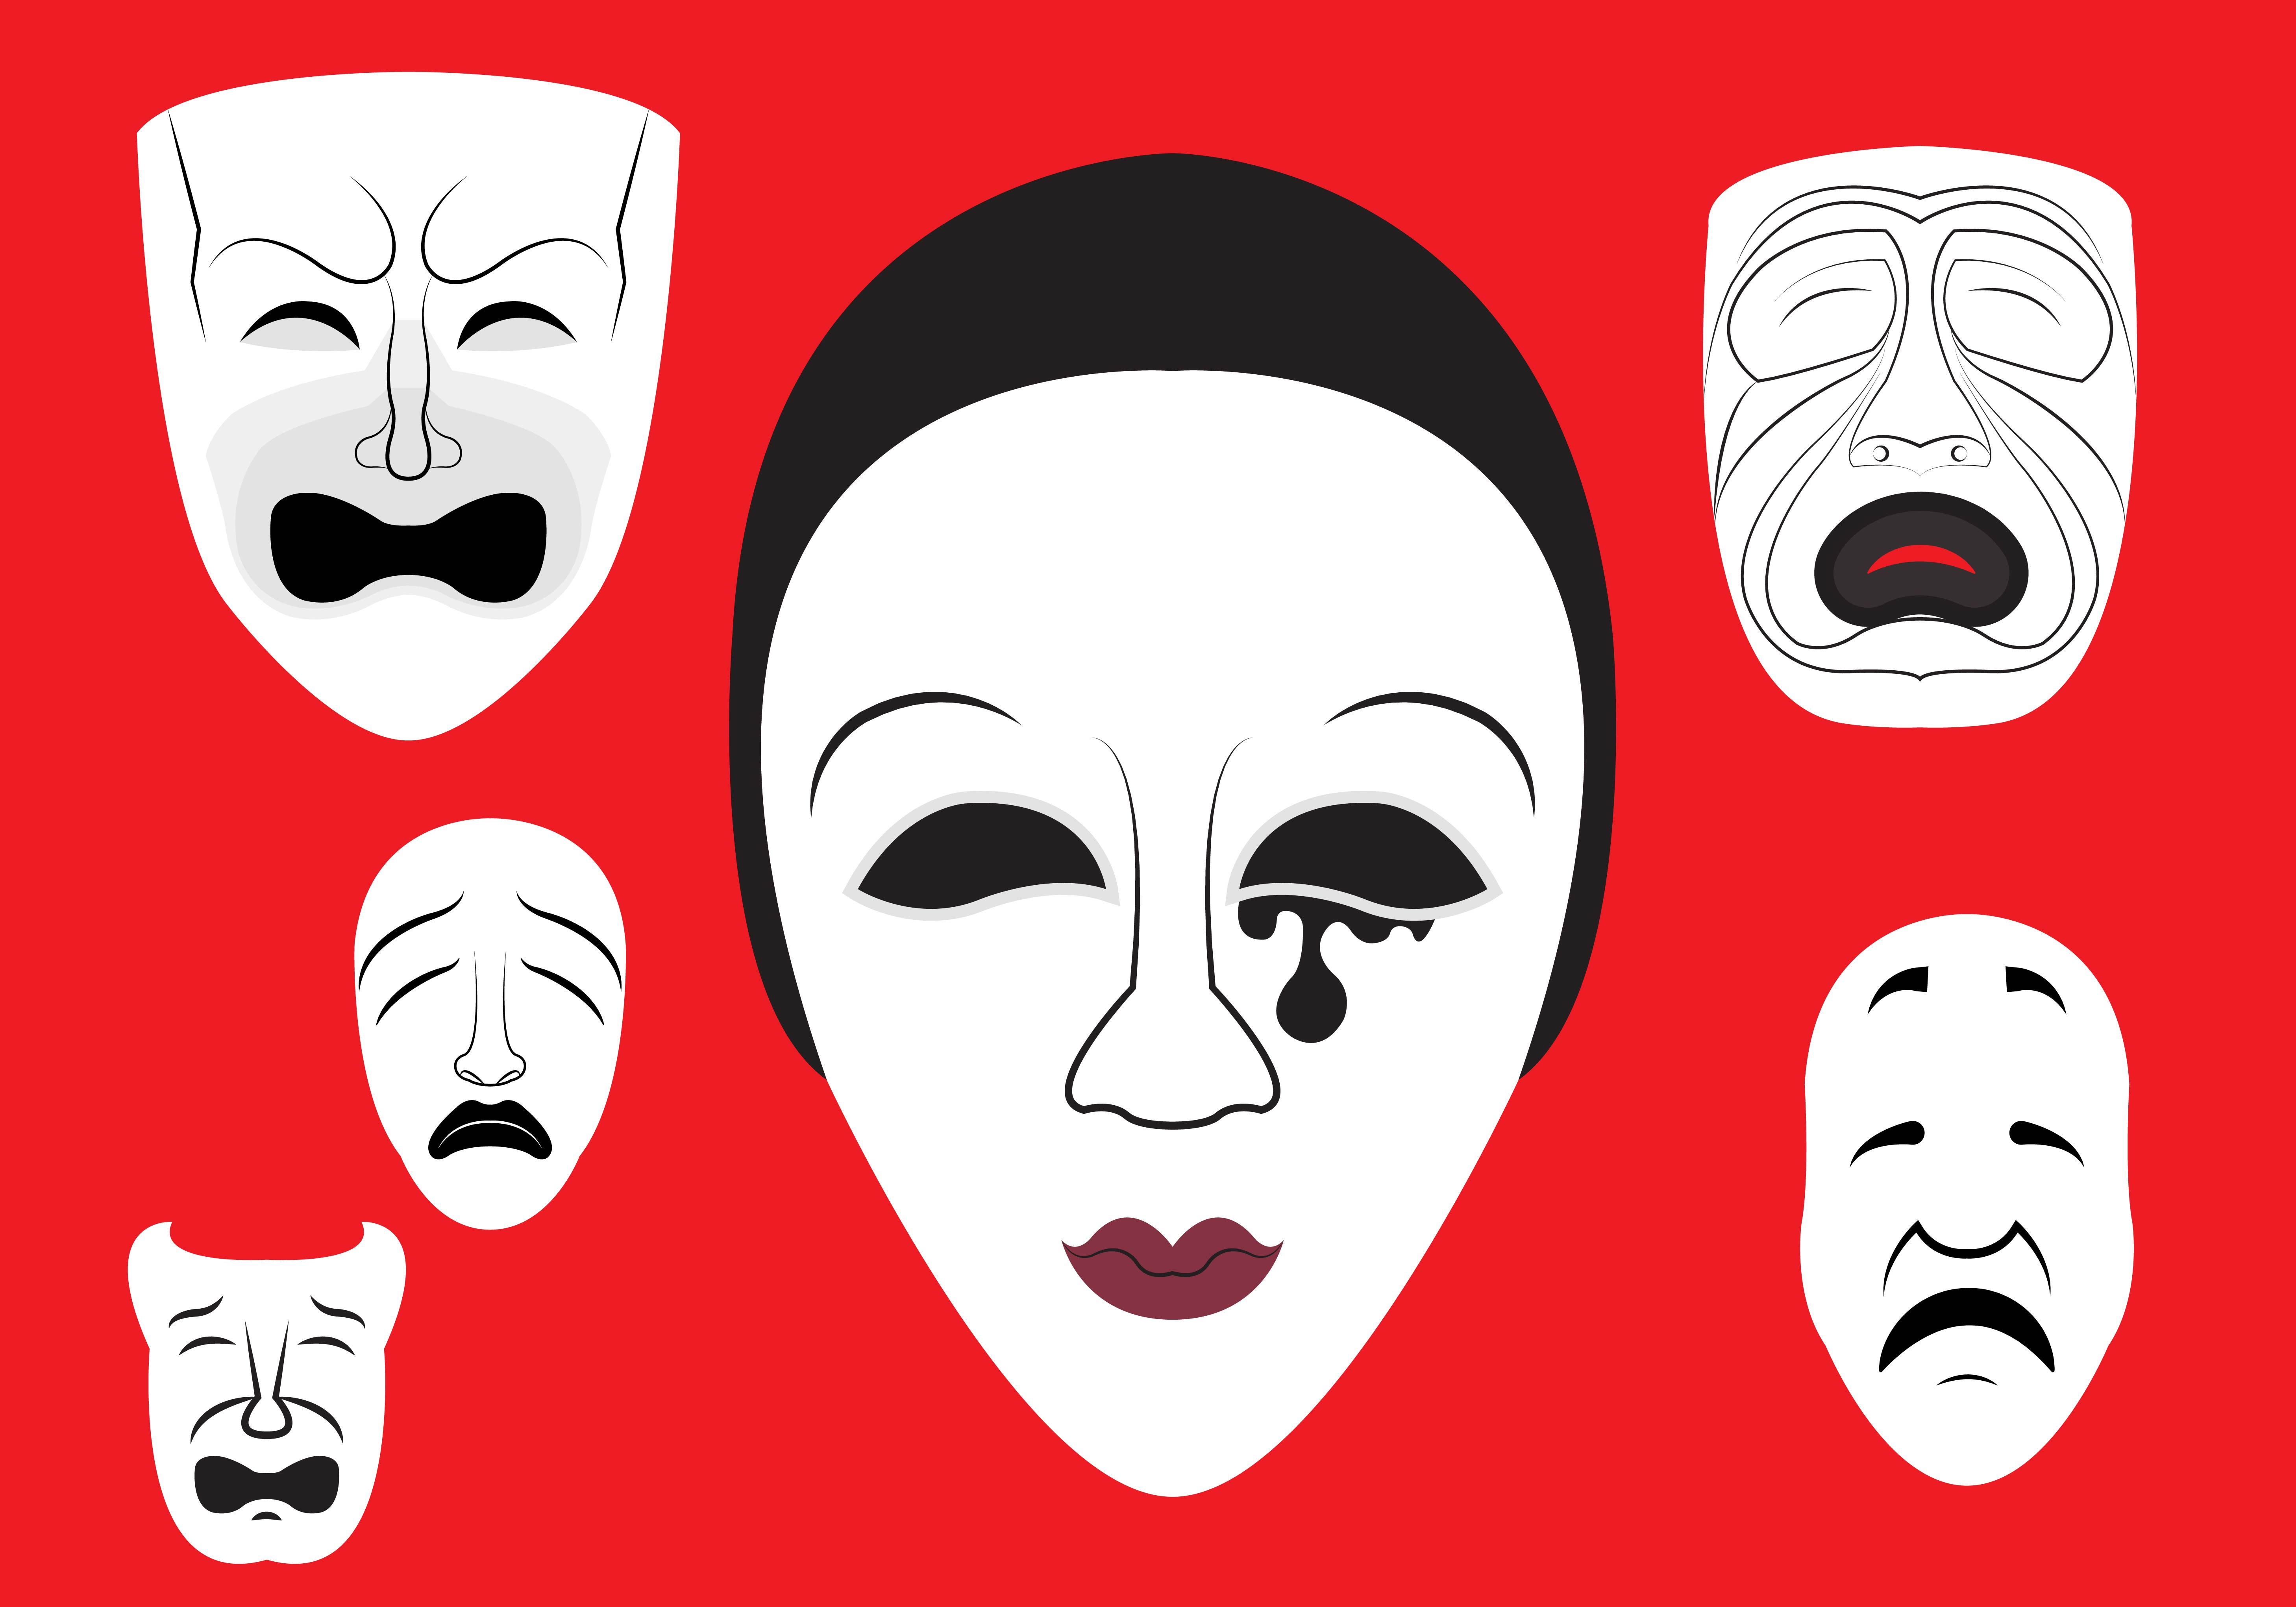 5833x4083 Illustration Of Theatre Masks Vector Free Vector Download In .ai